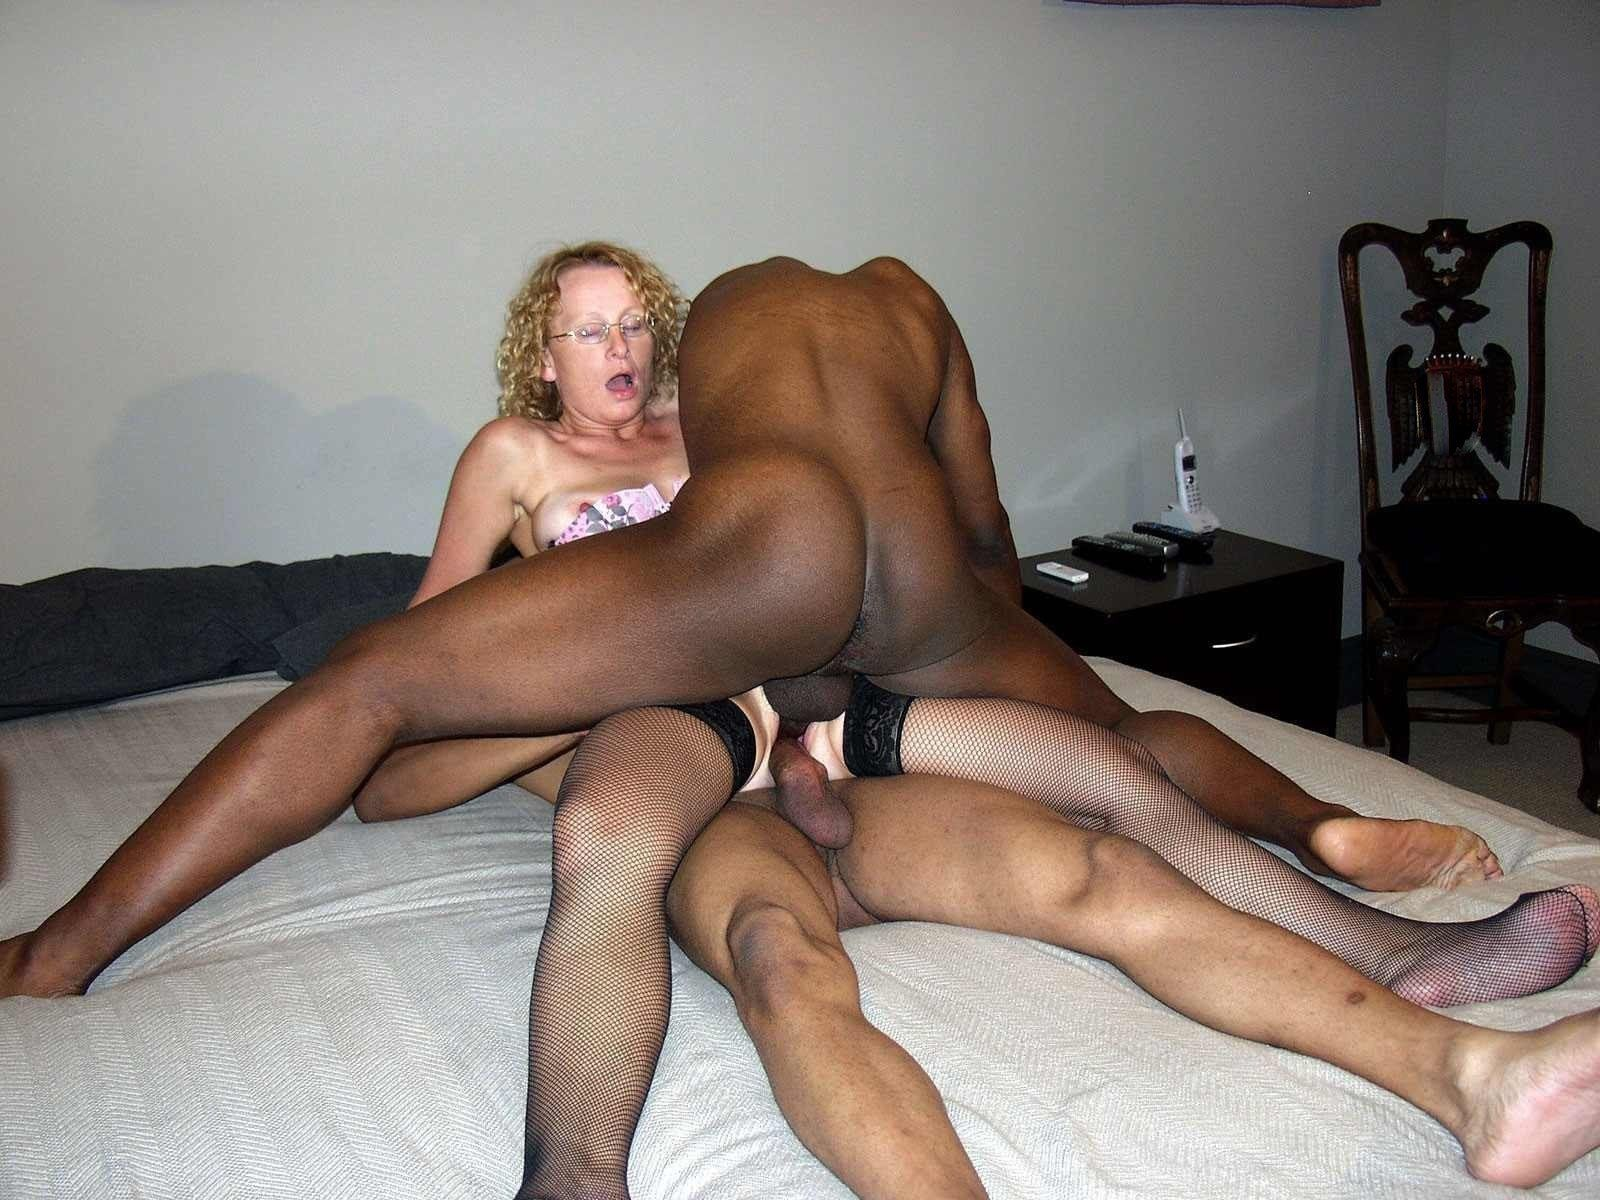 Man getting fucked